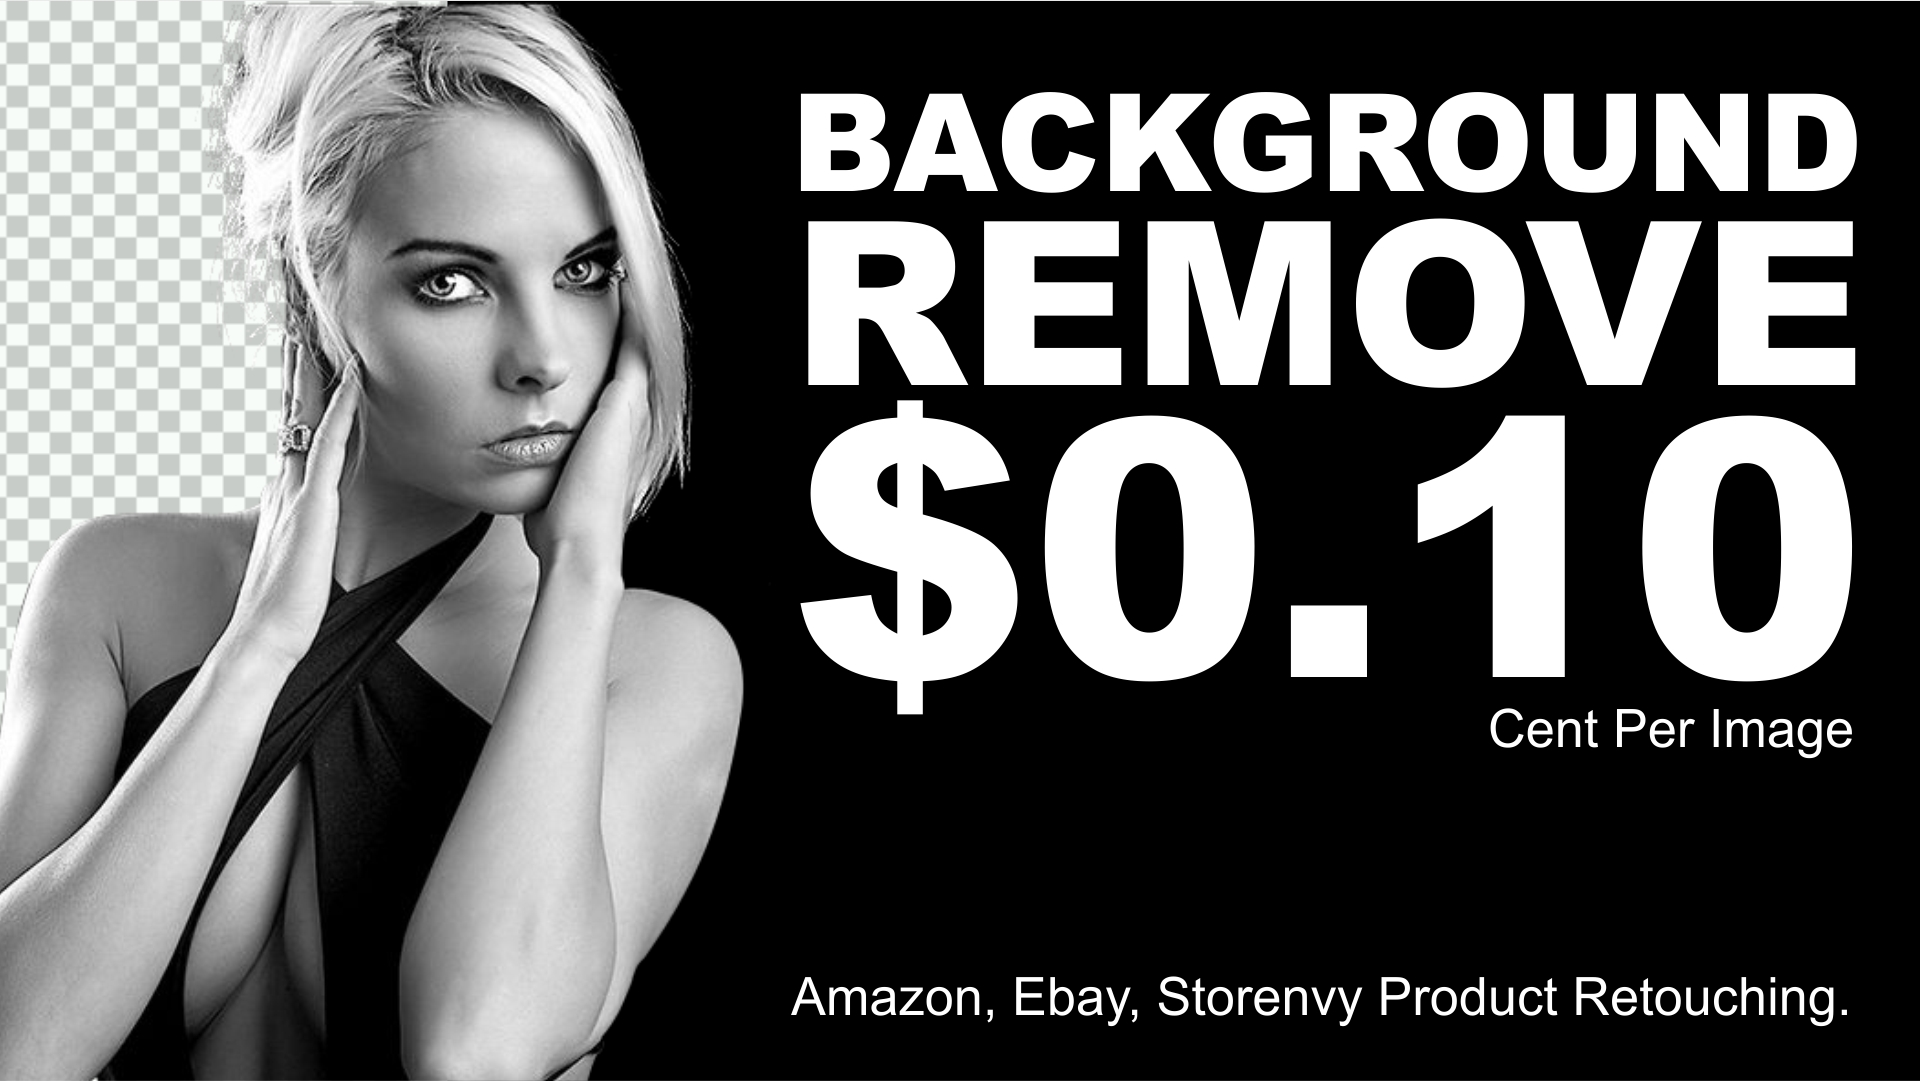 Super Fast Background Removal Service